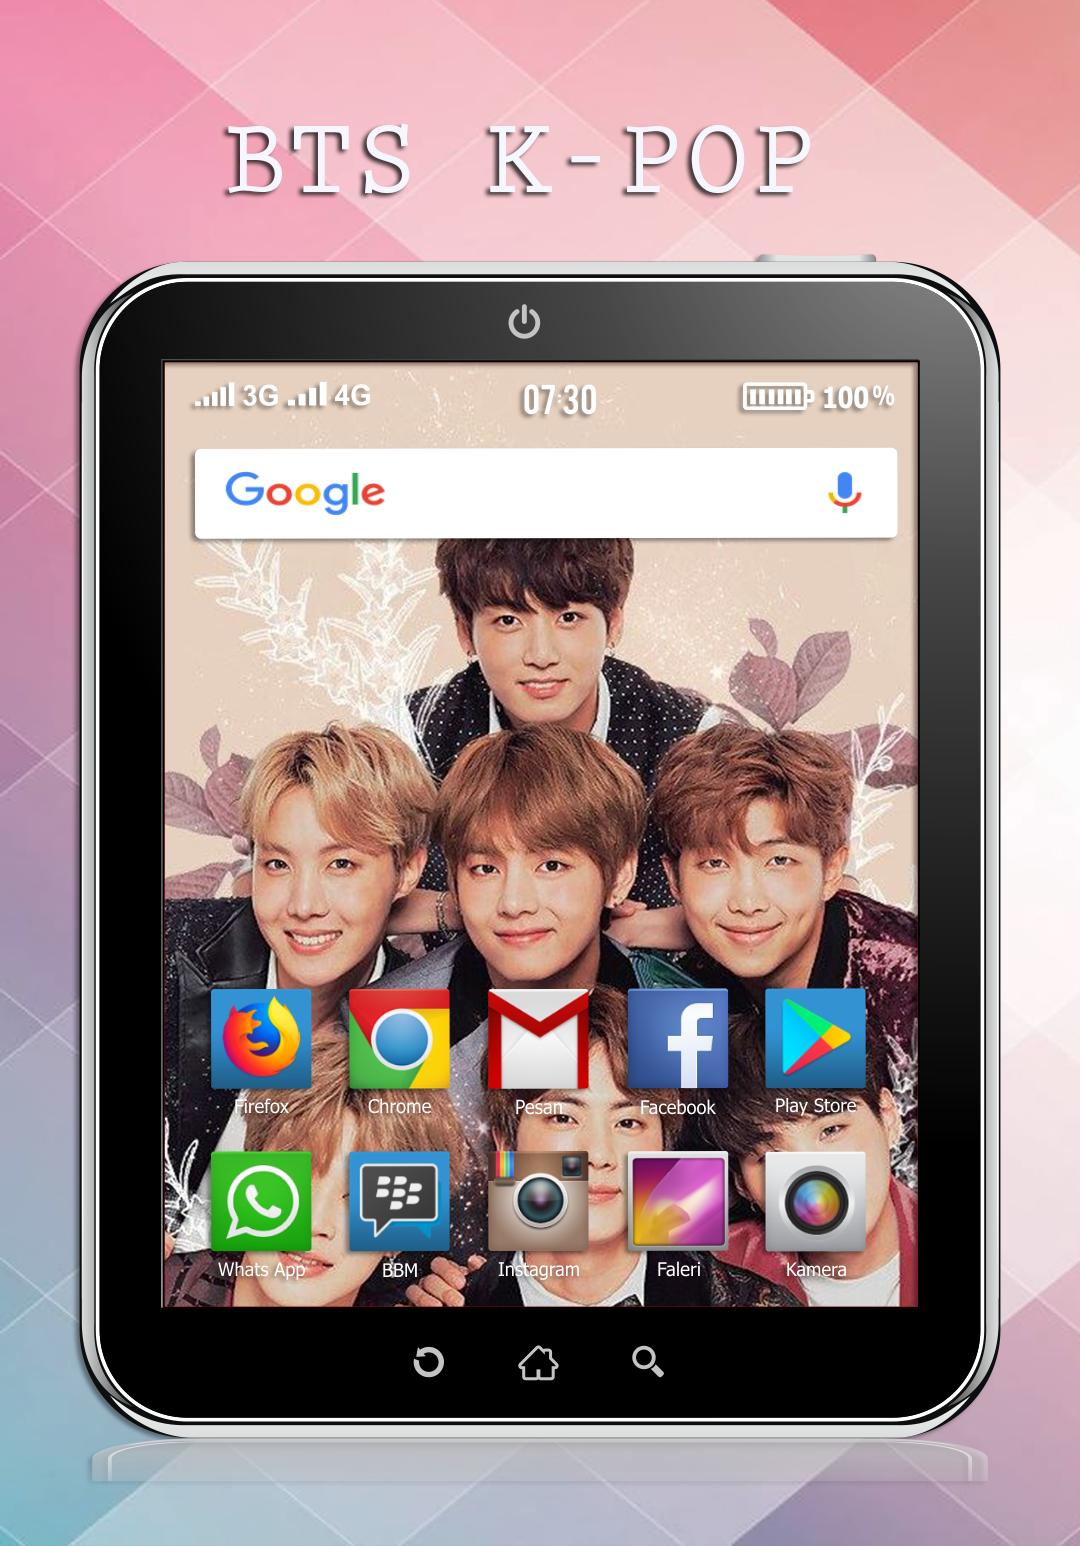 Bts Wallpaper K Pop For Android Apk Download